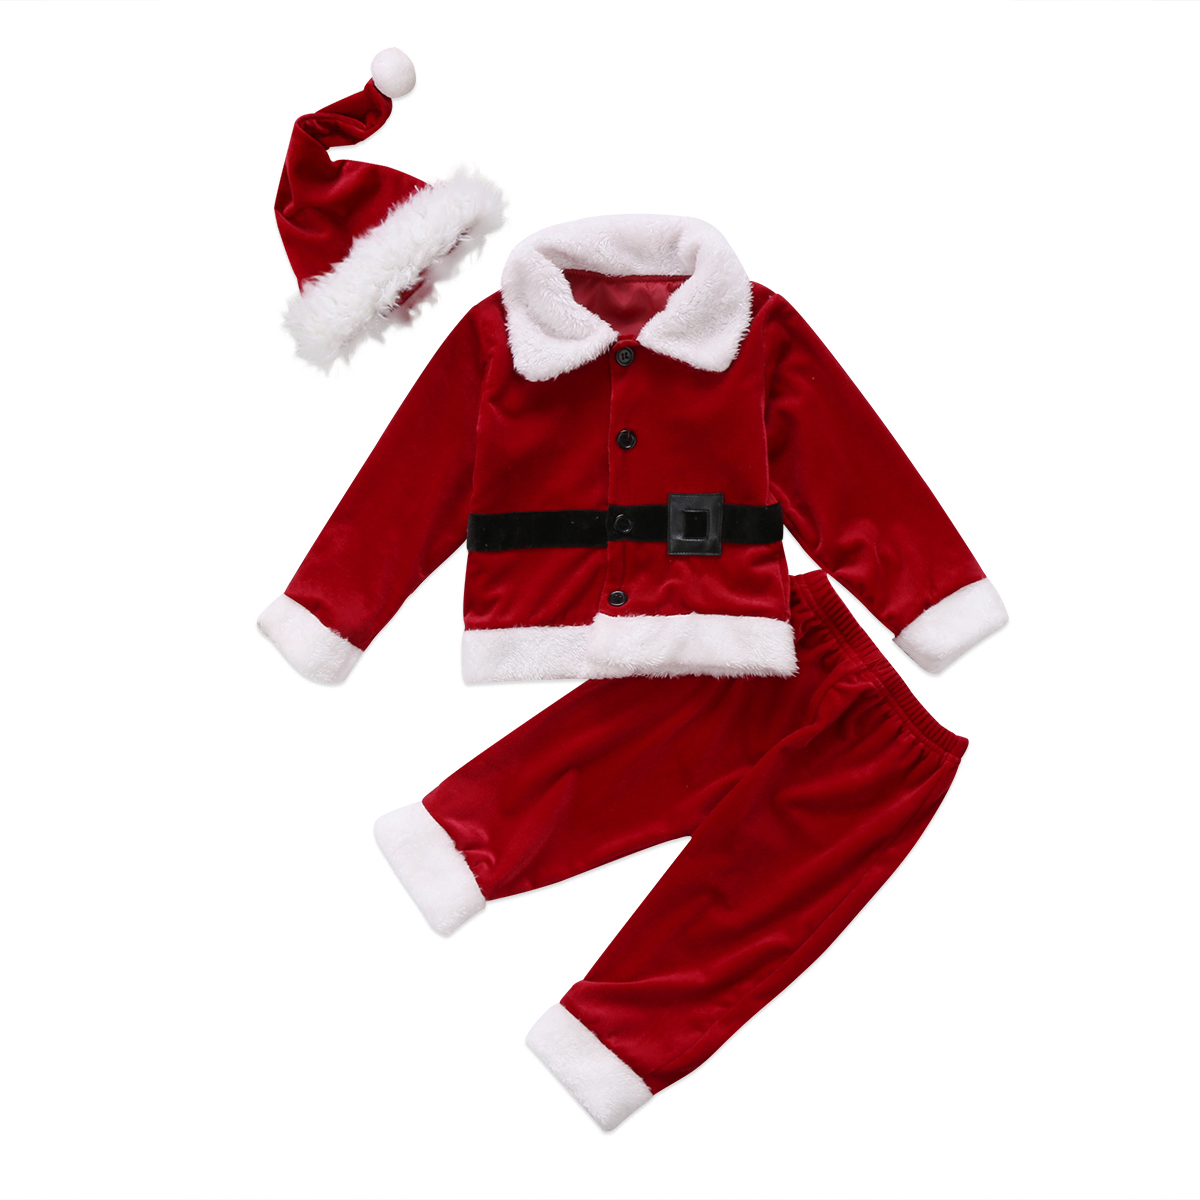 2017 New year kid baby boys girls Christmas Costume Santa Claus Suit Christmas Clothes Tops+Pant 2pcs Boys girl Kids Clothes santa claus mascot costume christmas cosplay mascot costume free shipping